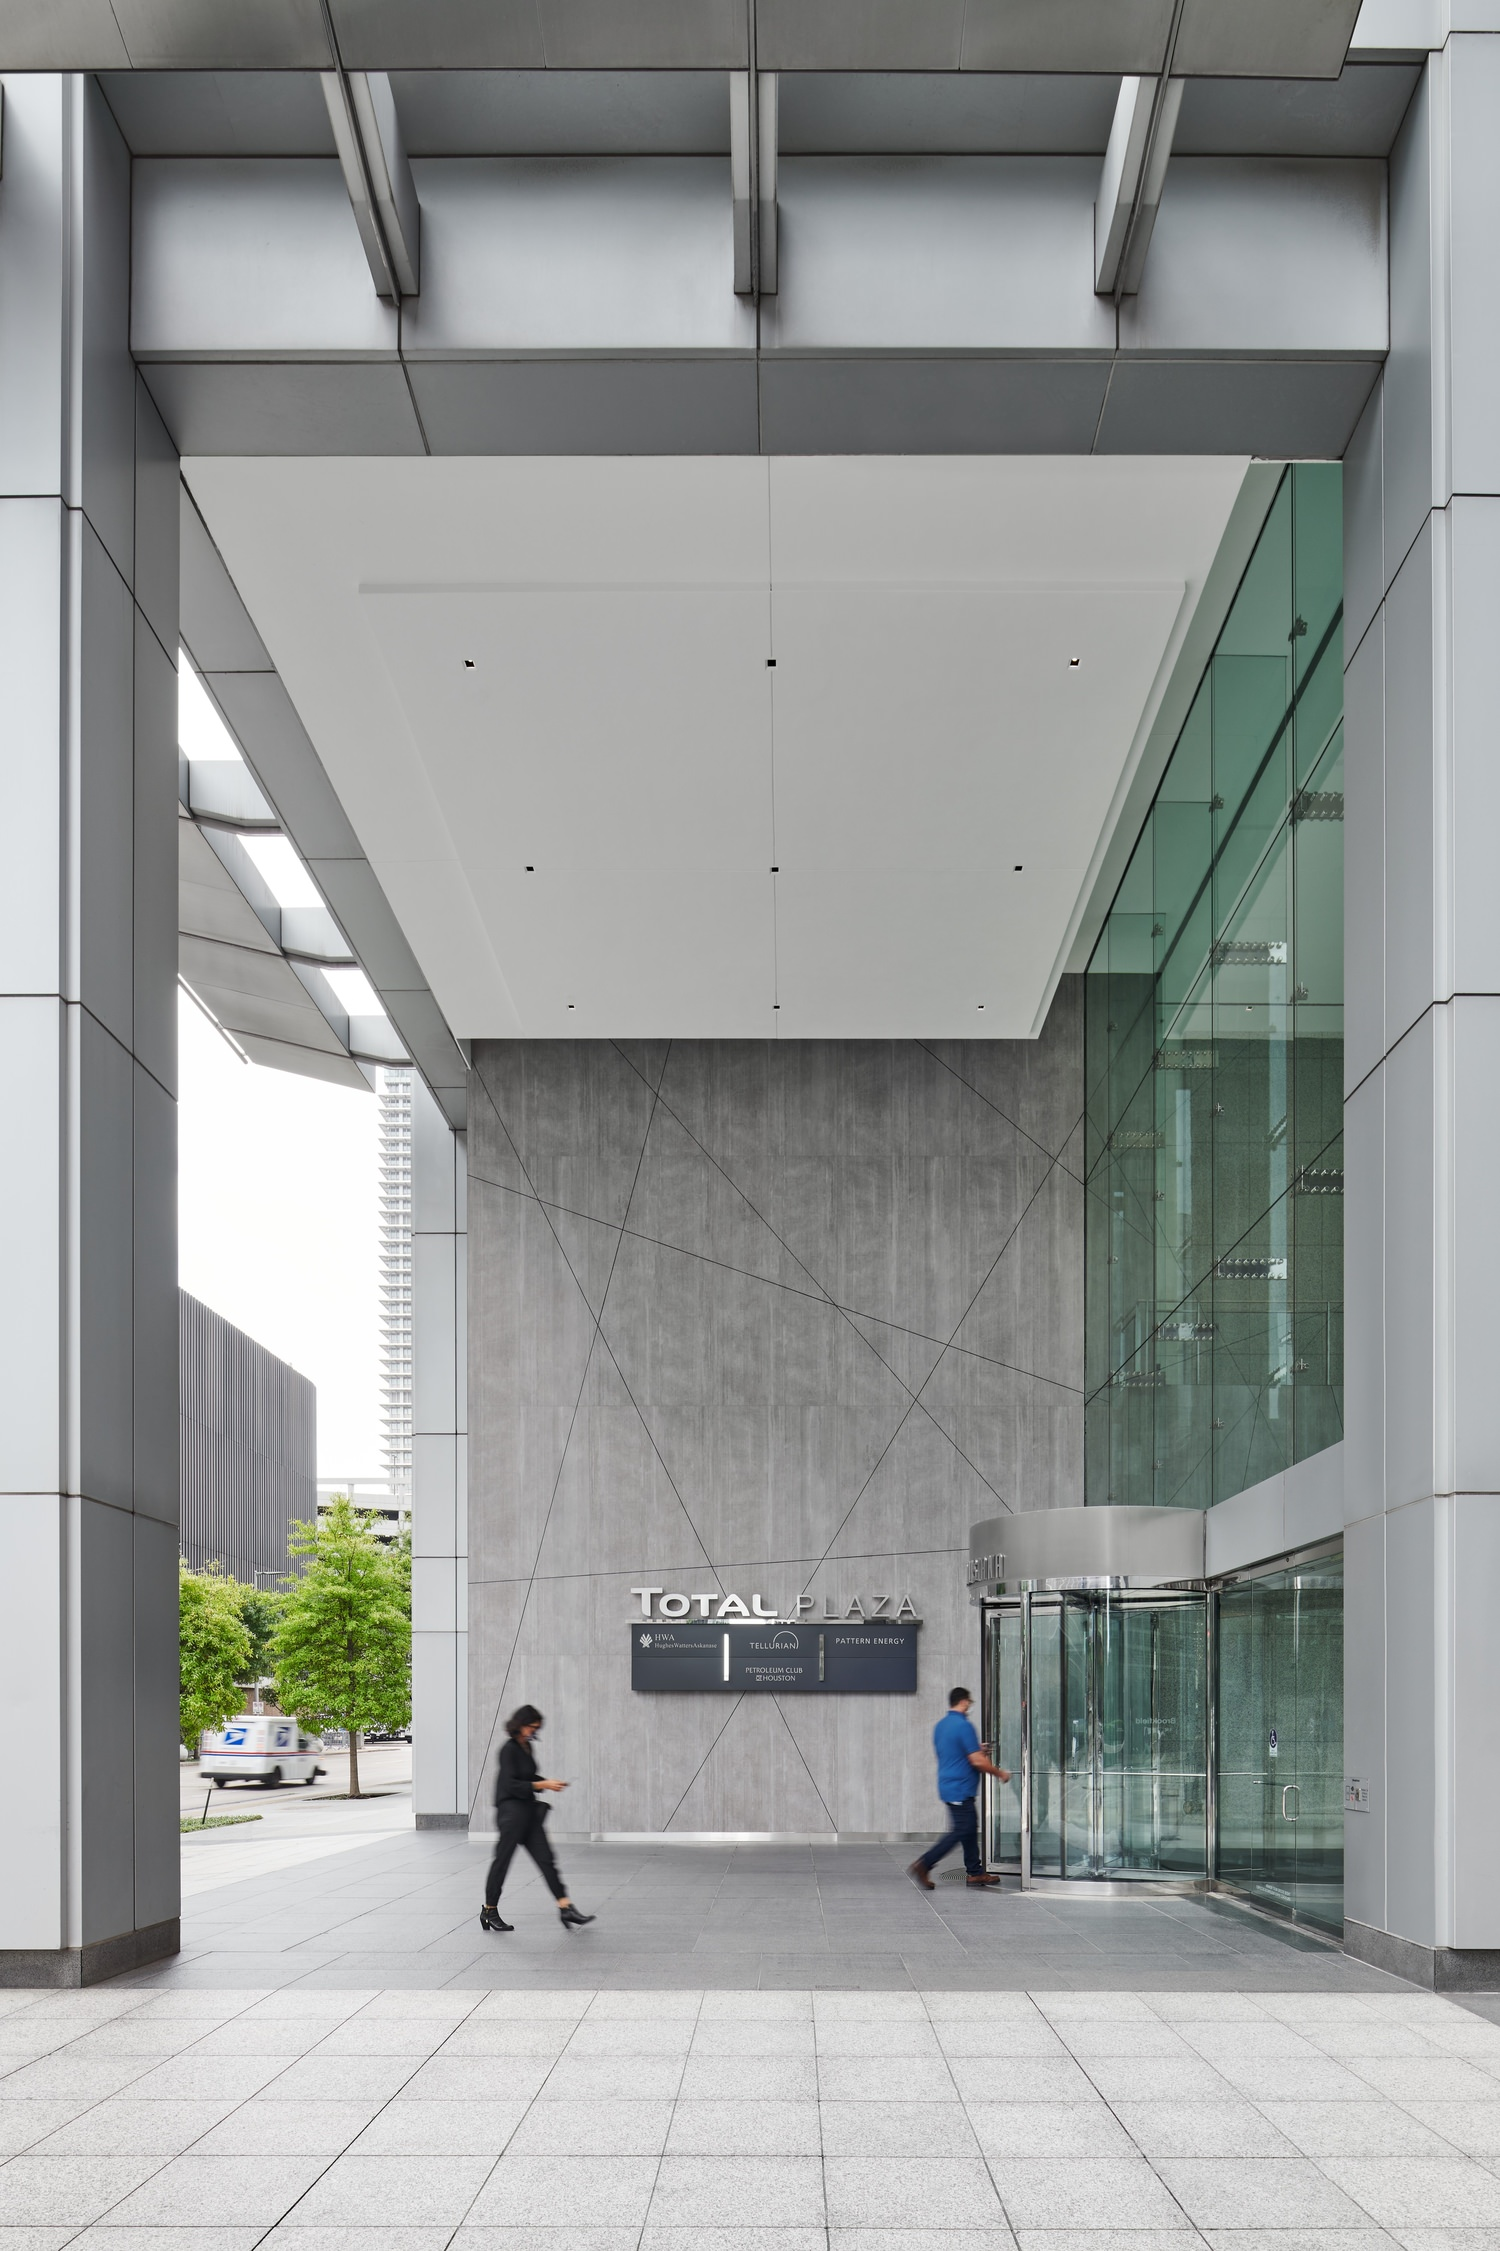 A group of people walking near the front of a large building with glass windows and walls.